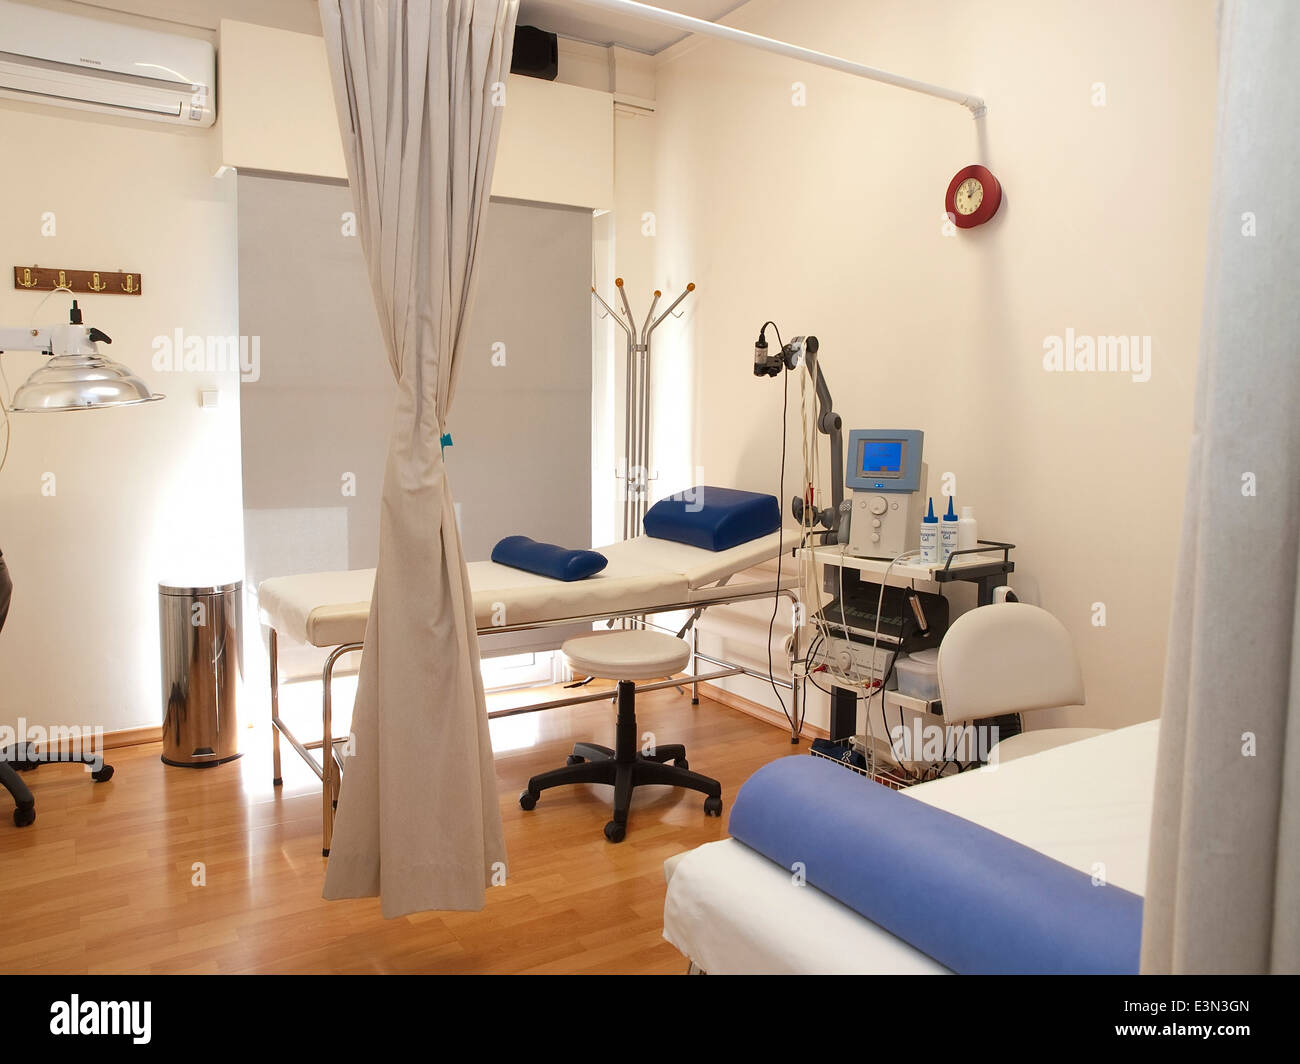 Physical therapy (physiotherapy) room with equipment - Stock Image